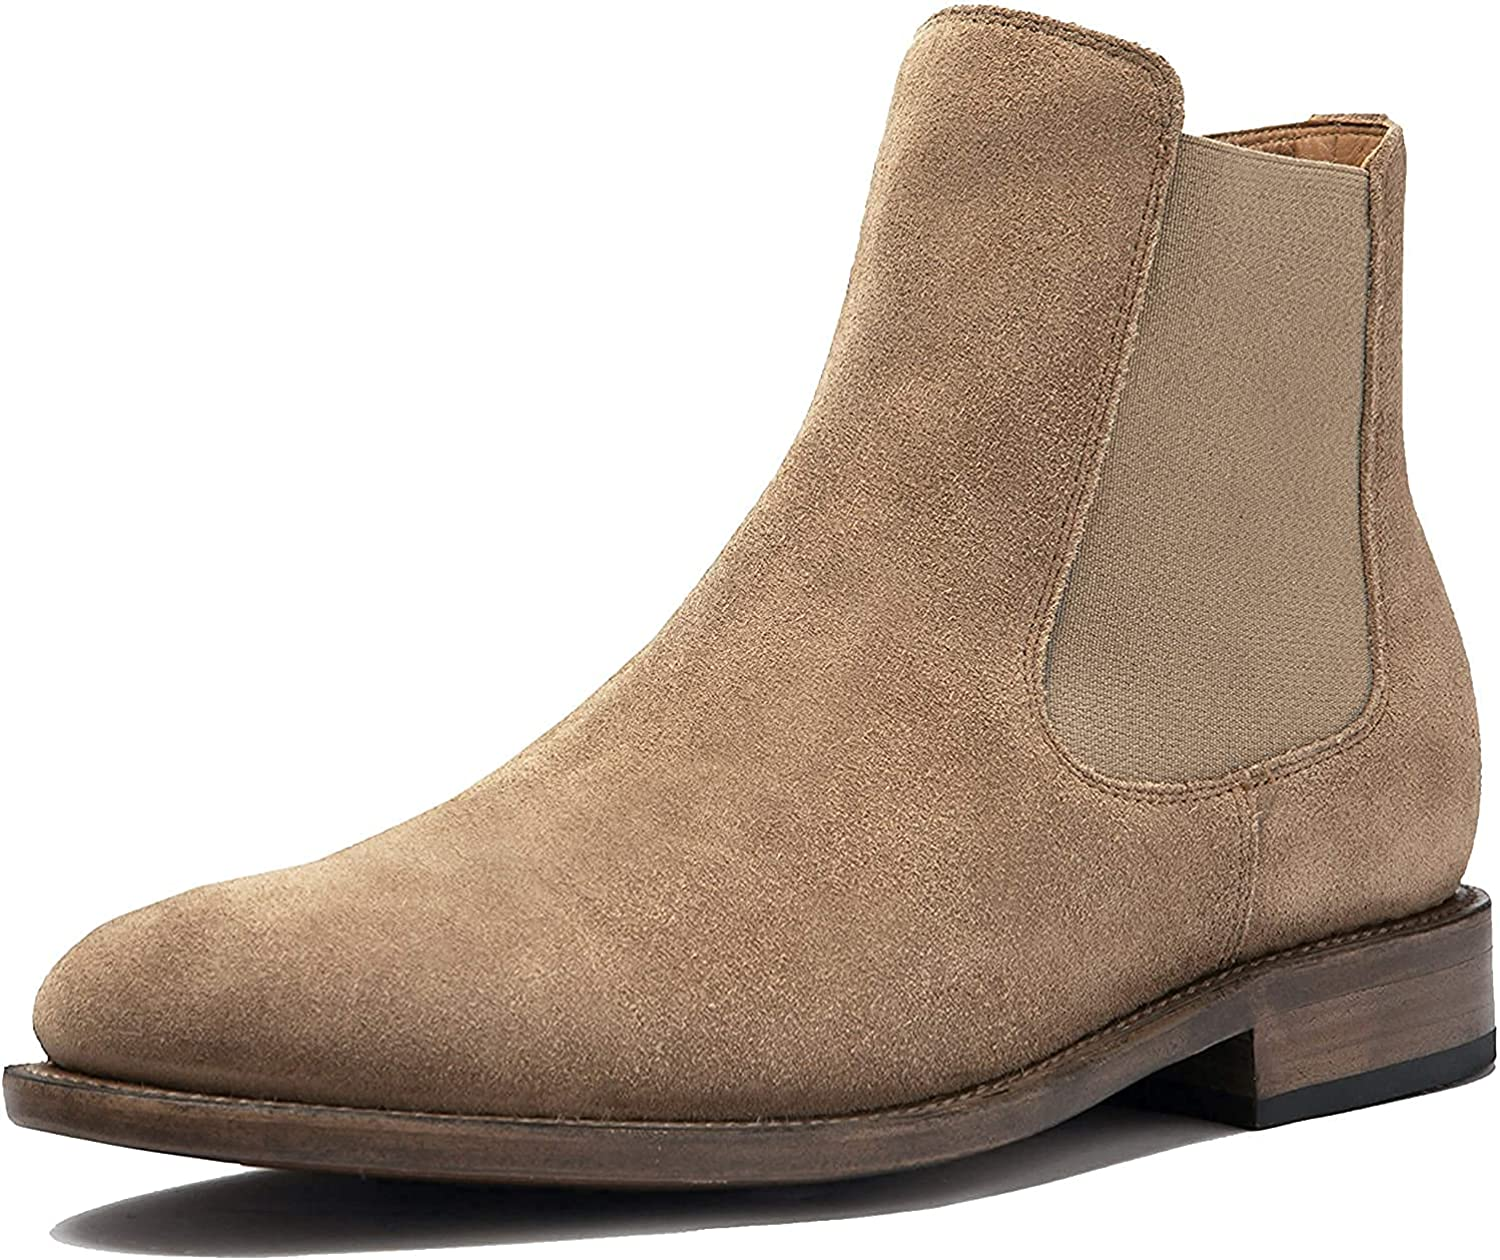 sold out Thursday Boot Low price Company Chelsea Men's Cavalier